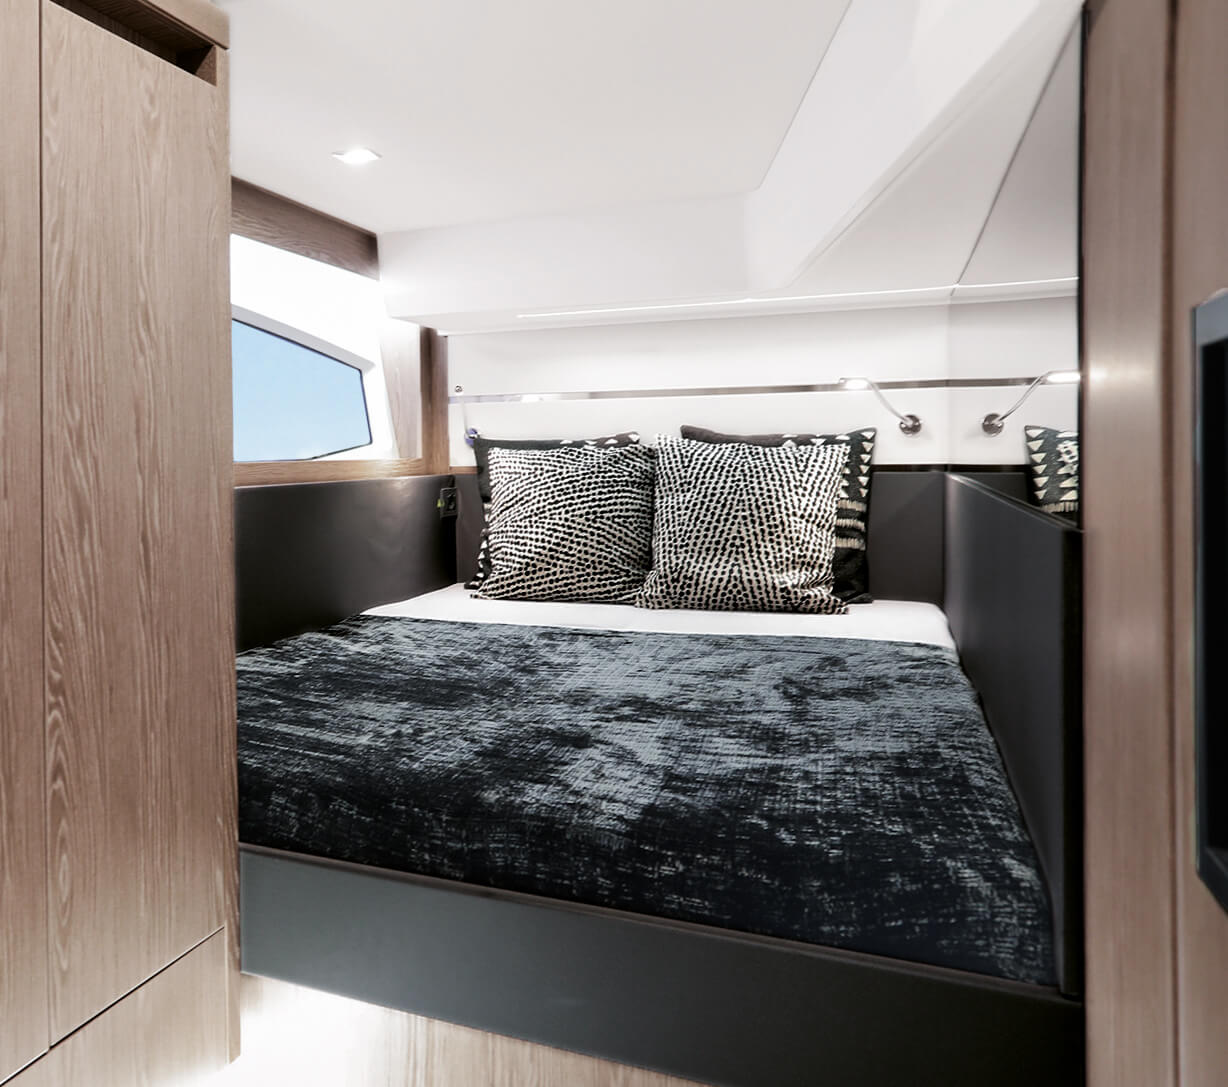 Sealine F430 Interno vista | Starboard cabin with double berth and wardrobe | Sealine